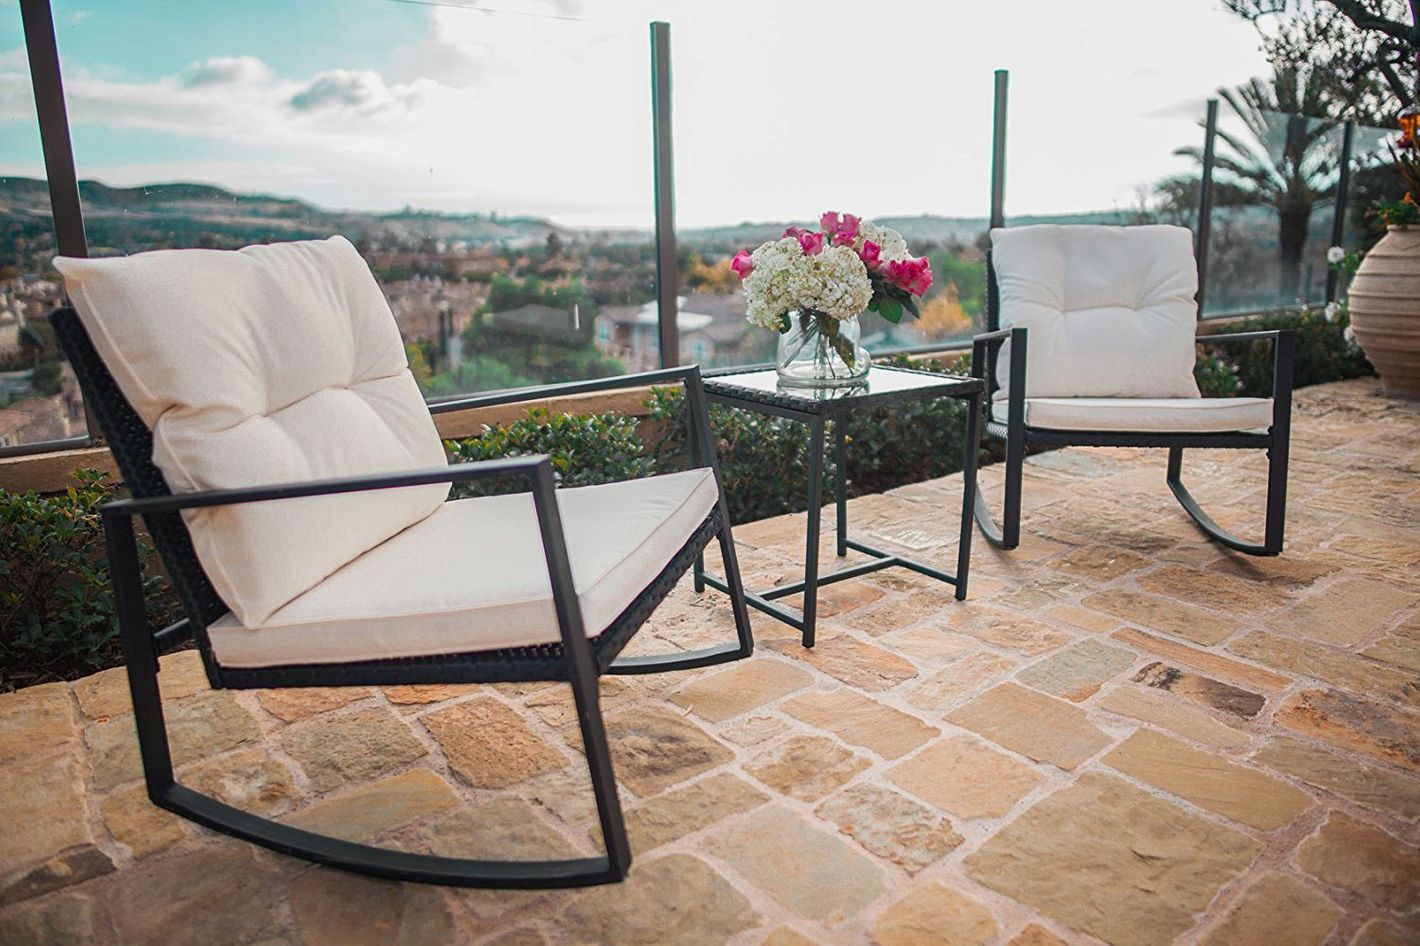 34ffb55a6e0a Suncrown Outdoor 3-Piece Rocking Wicker Bistro Set at Amazon